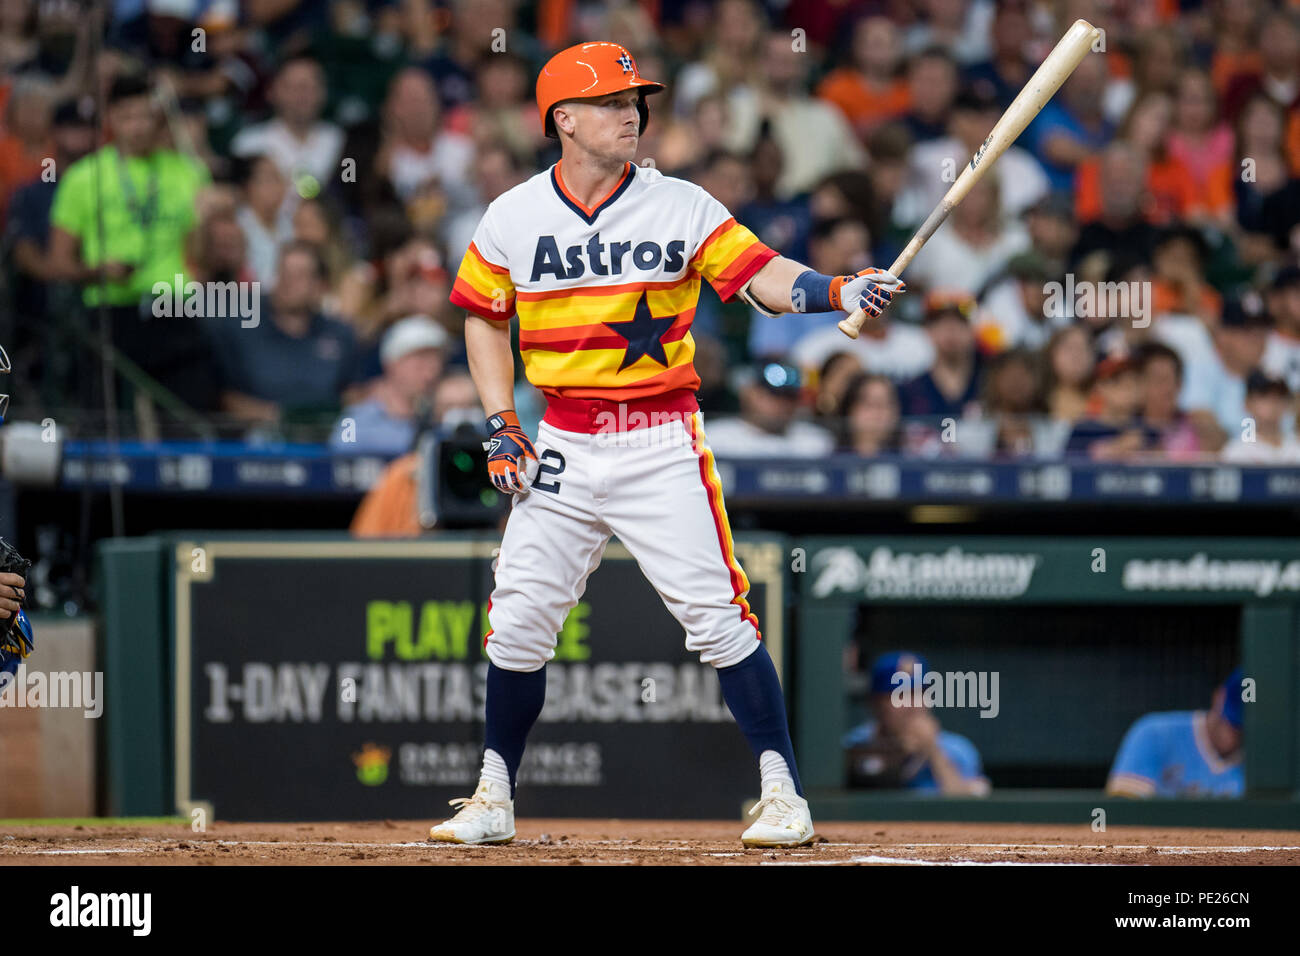 new concept be468 1a9f1 August 10, 2018: Houston Astros third baseman Alex Bregman ...